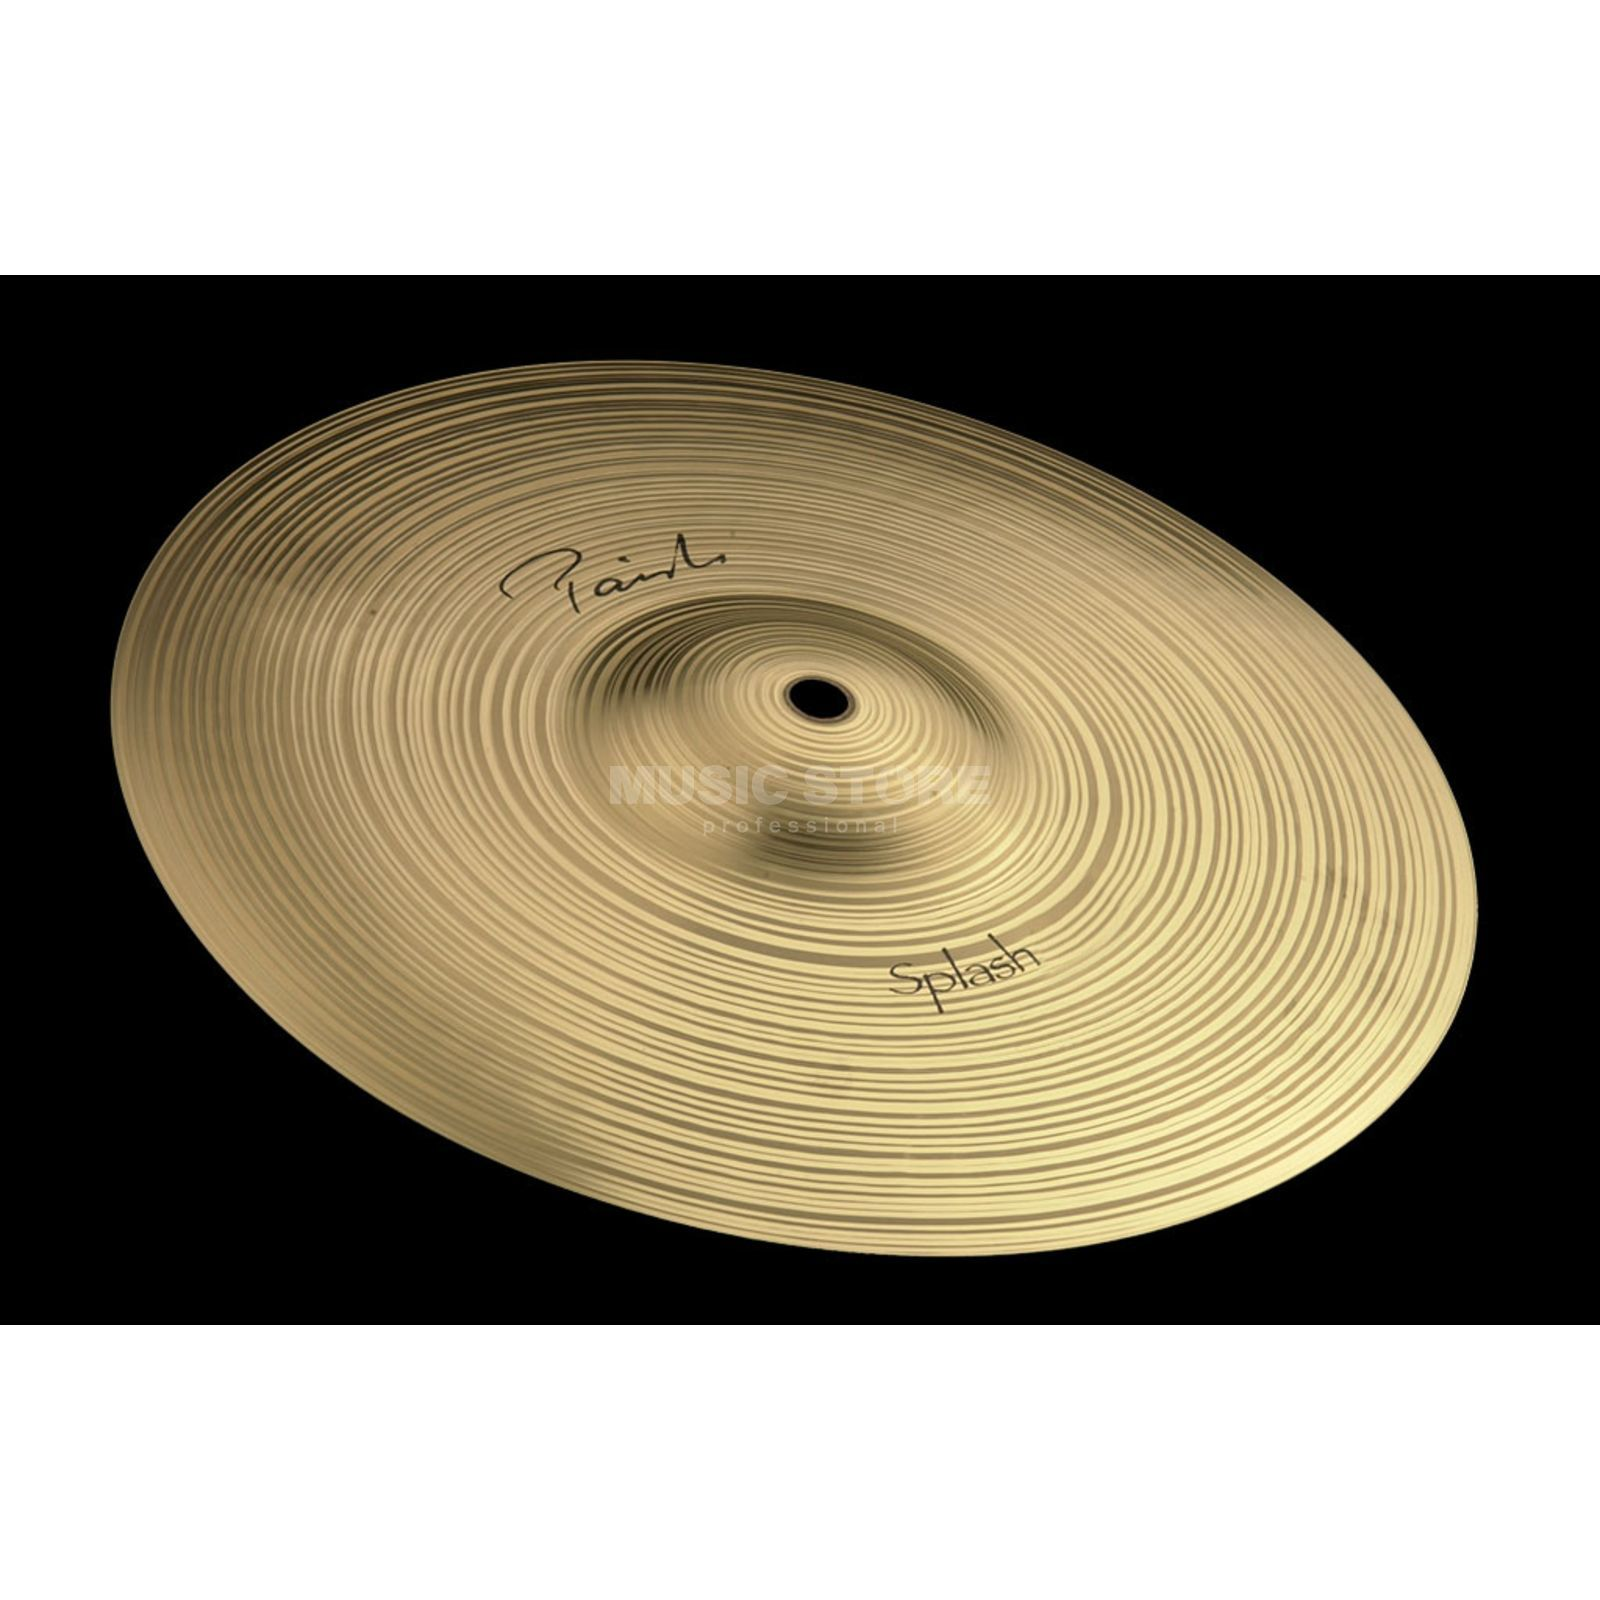 "Paiste Signature Splash 10"", Dark Energy Splash MK1 Produktbillede"